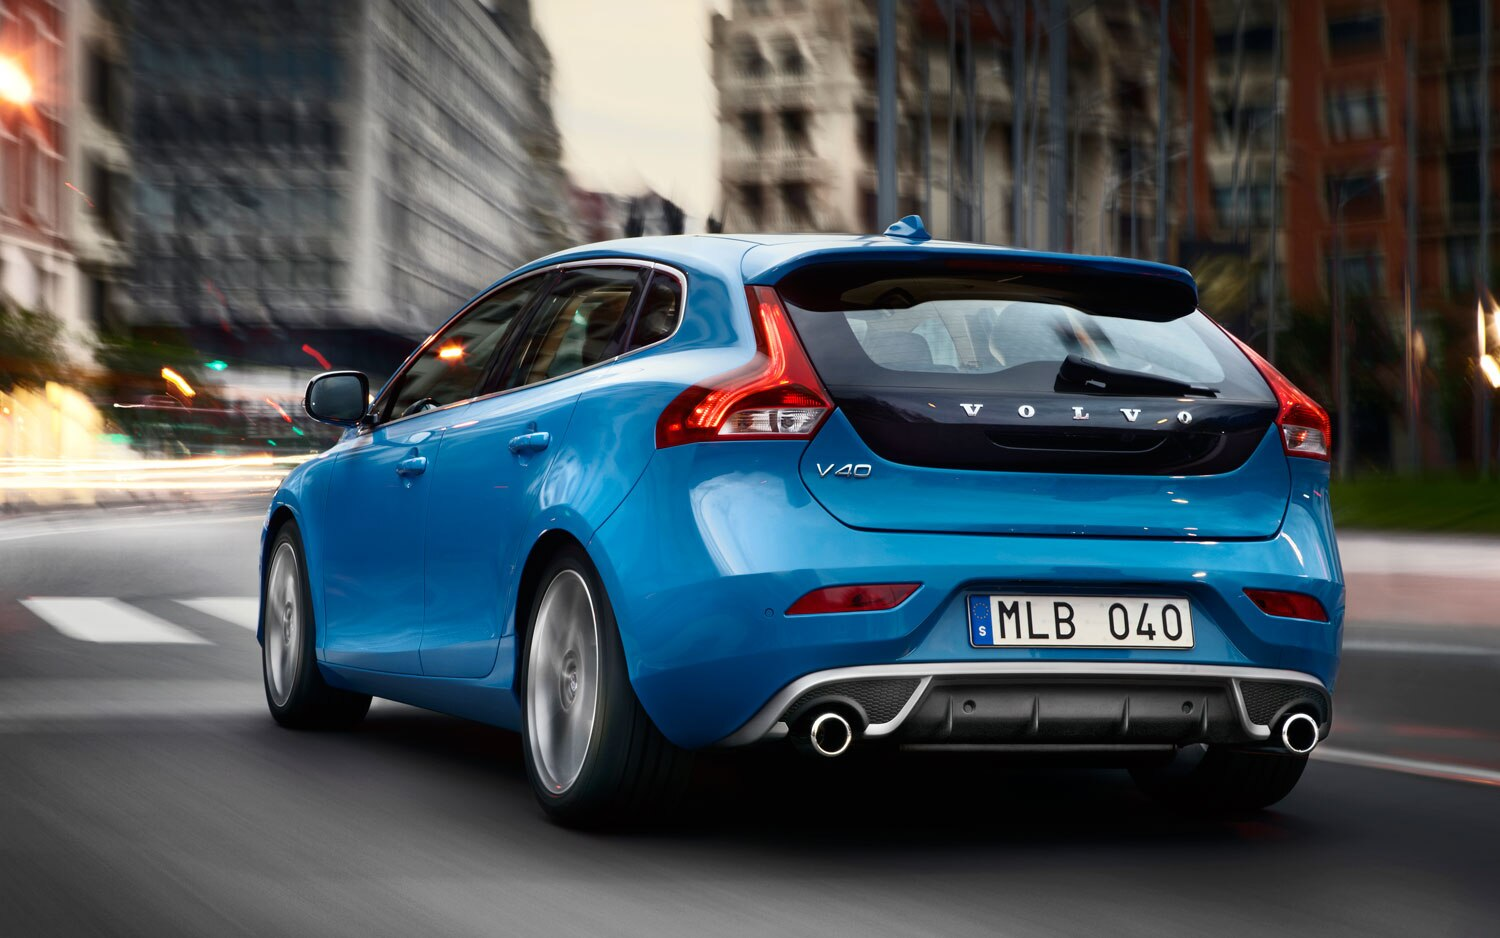 Volvo volvo coupe 2015 : Report: Next-Generation Volvo V40 Coming to the U.S.